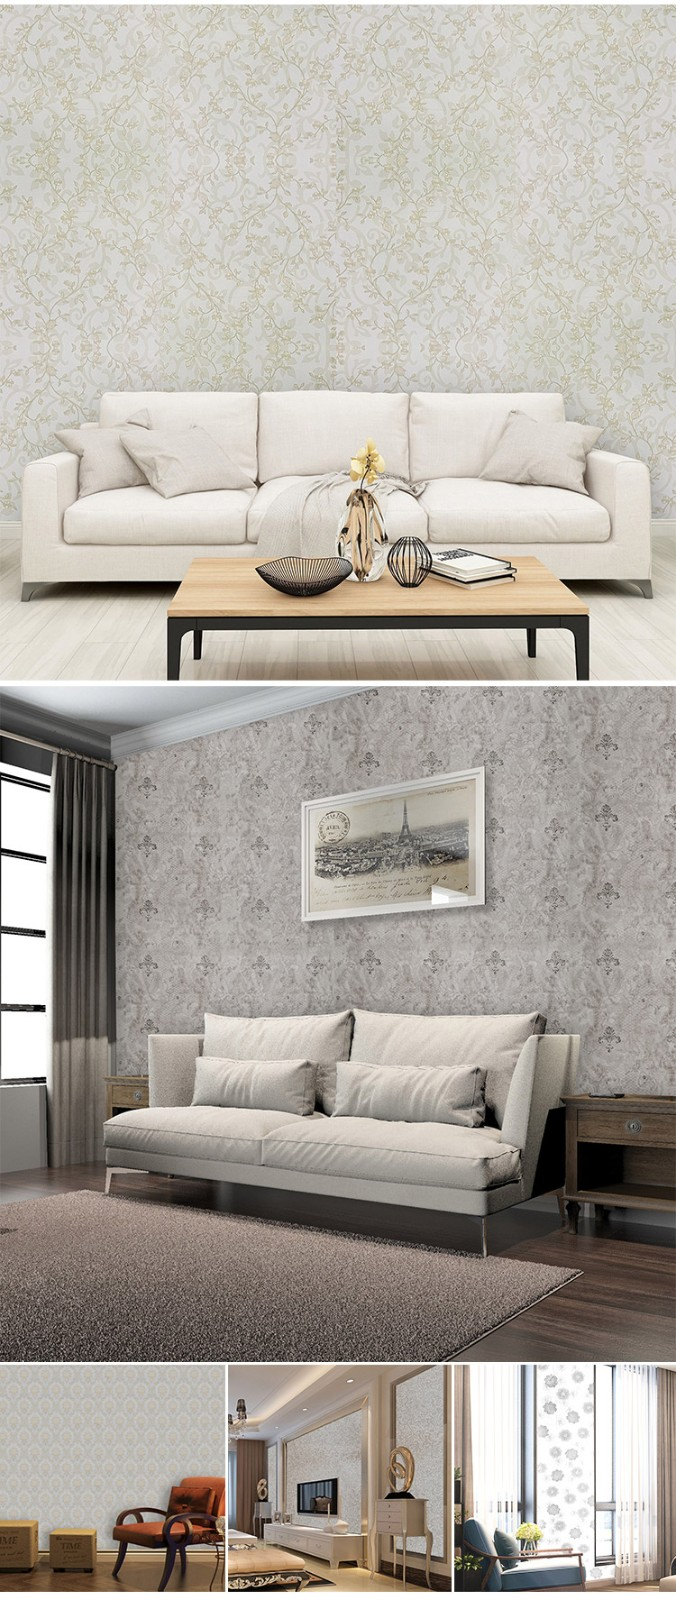 SUNYE vinyl wall covering factory direct supply for heating-6